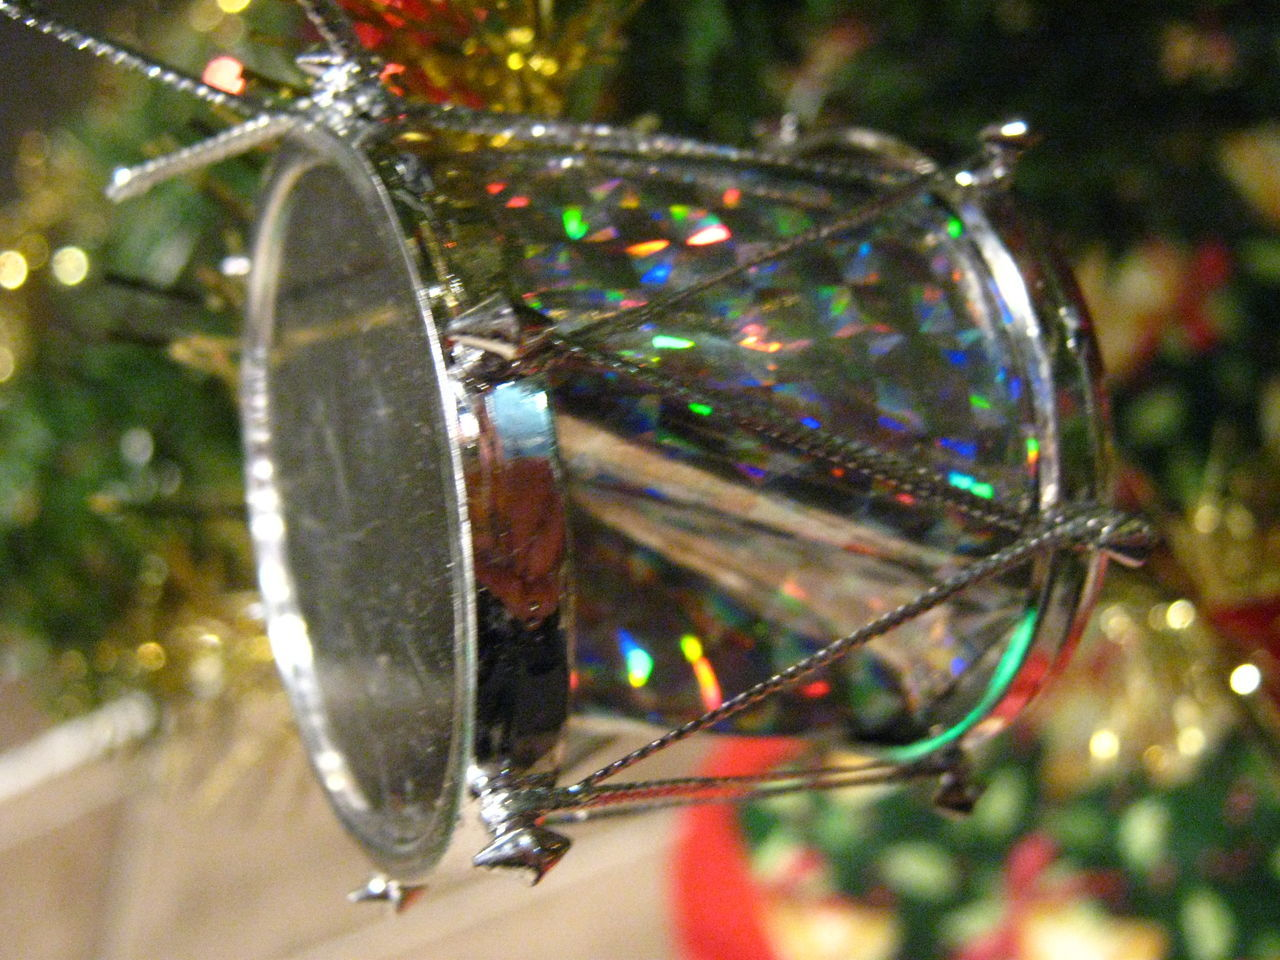 close-up, celebration, christmas, no people, indoors, christmas decoration, day